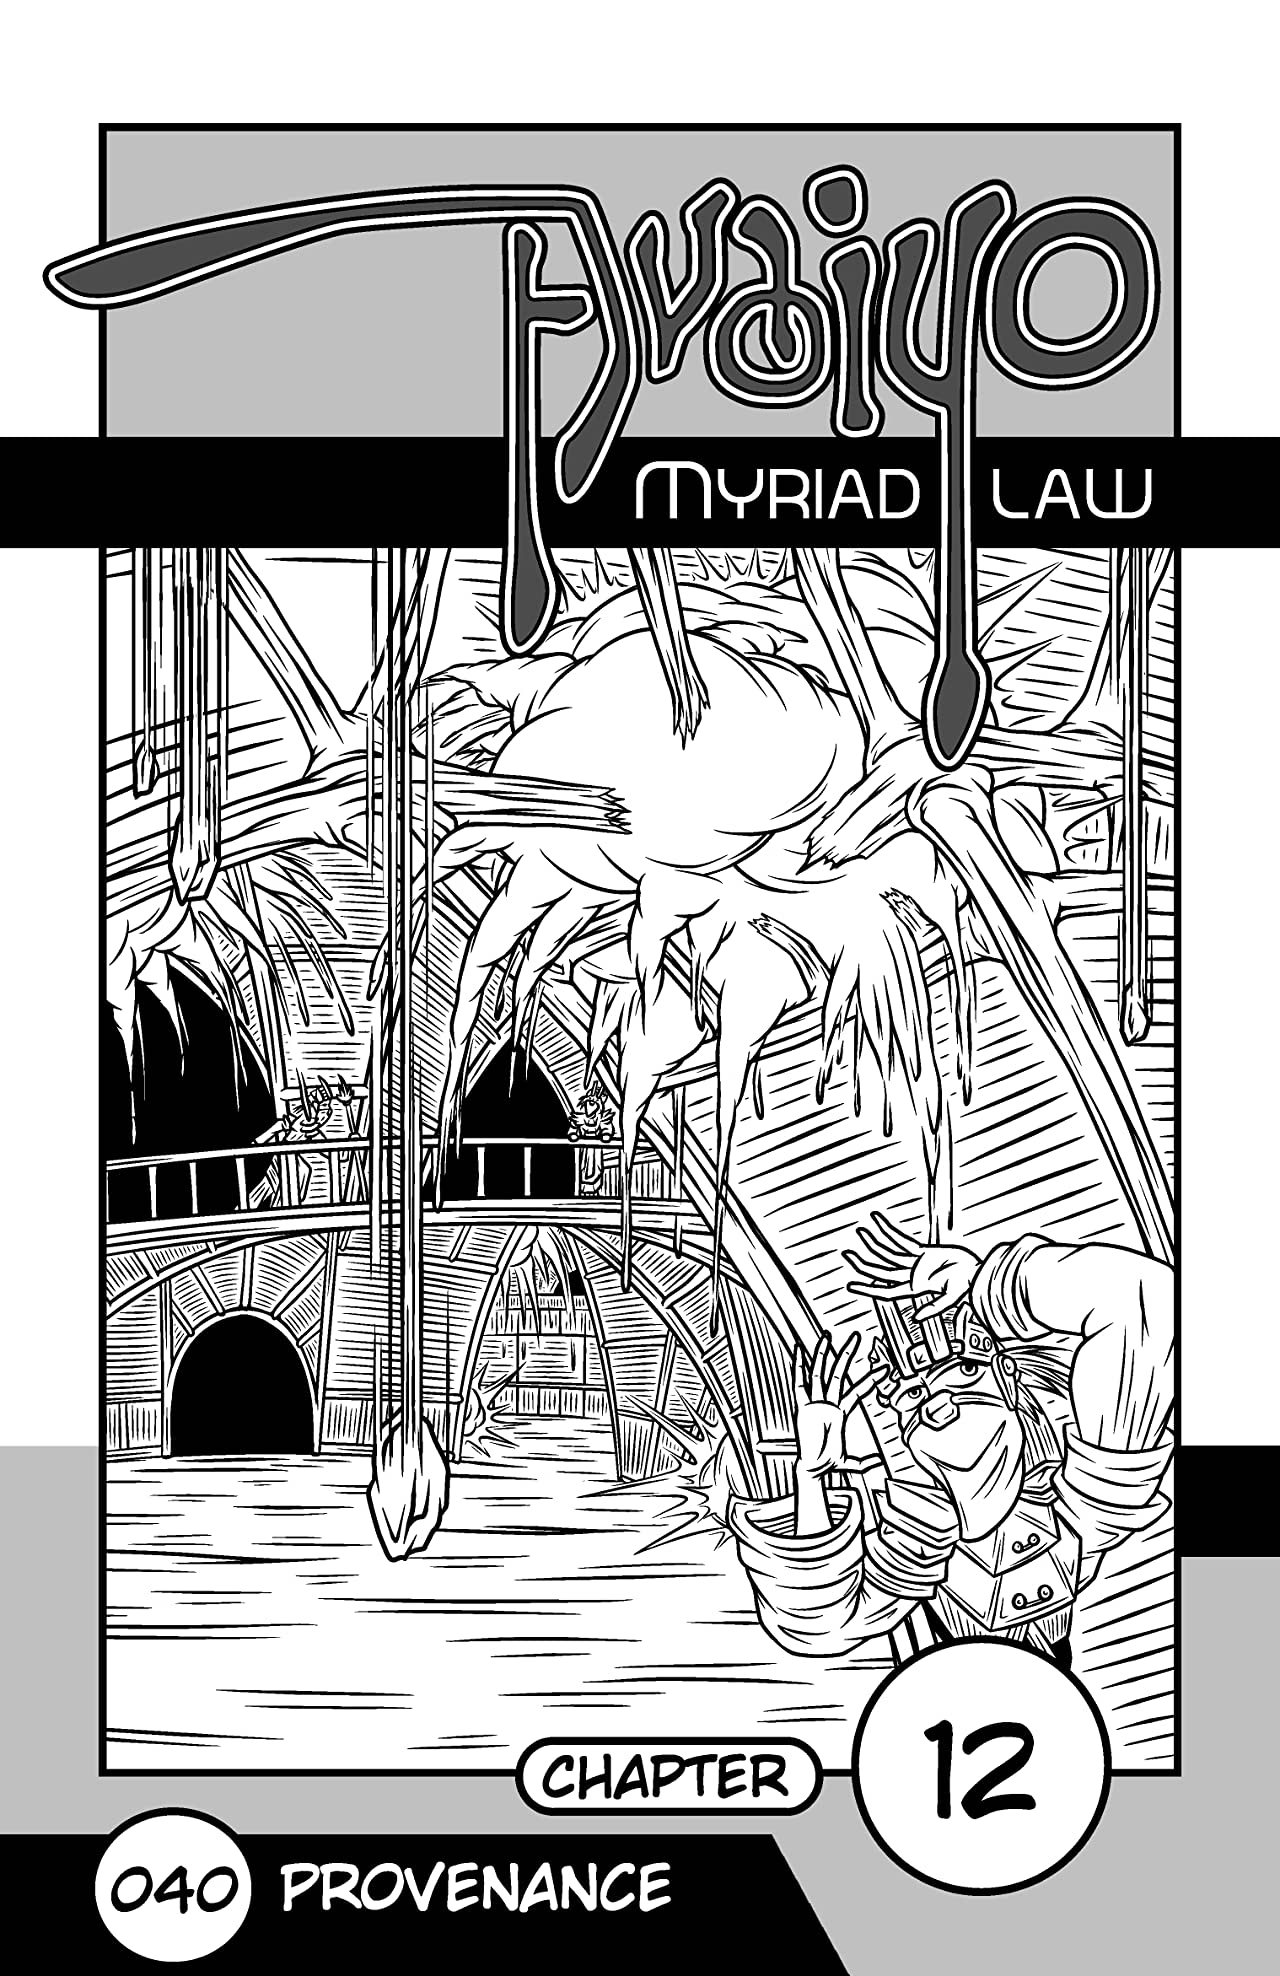 Avaiyo: Myriad Law #040